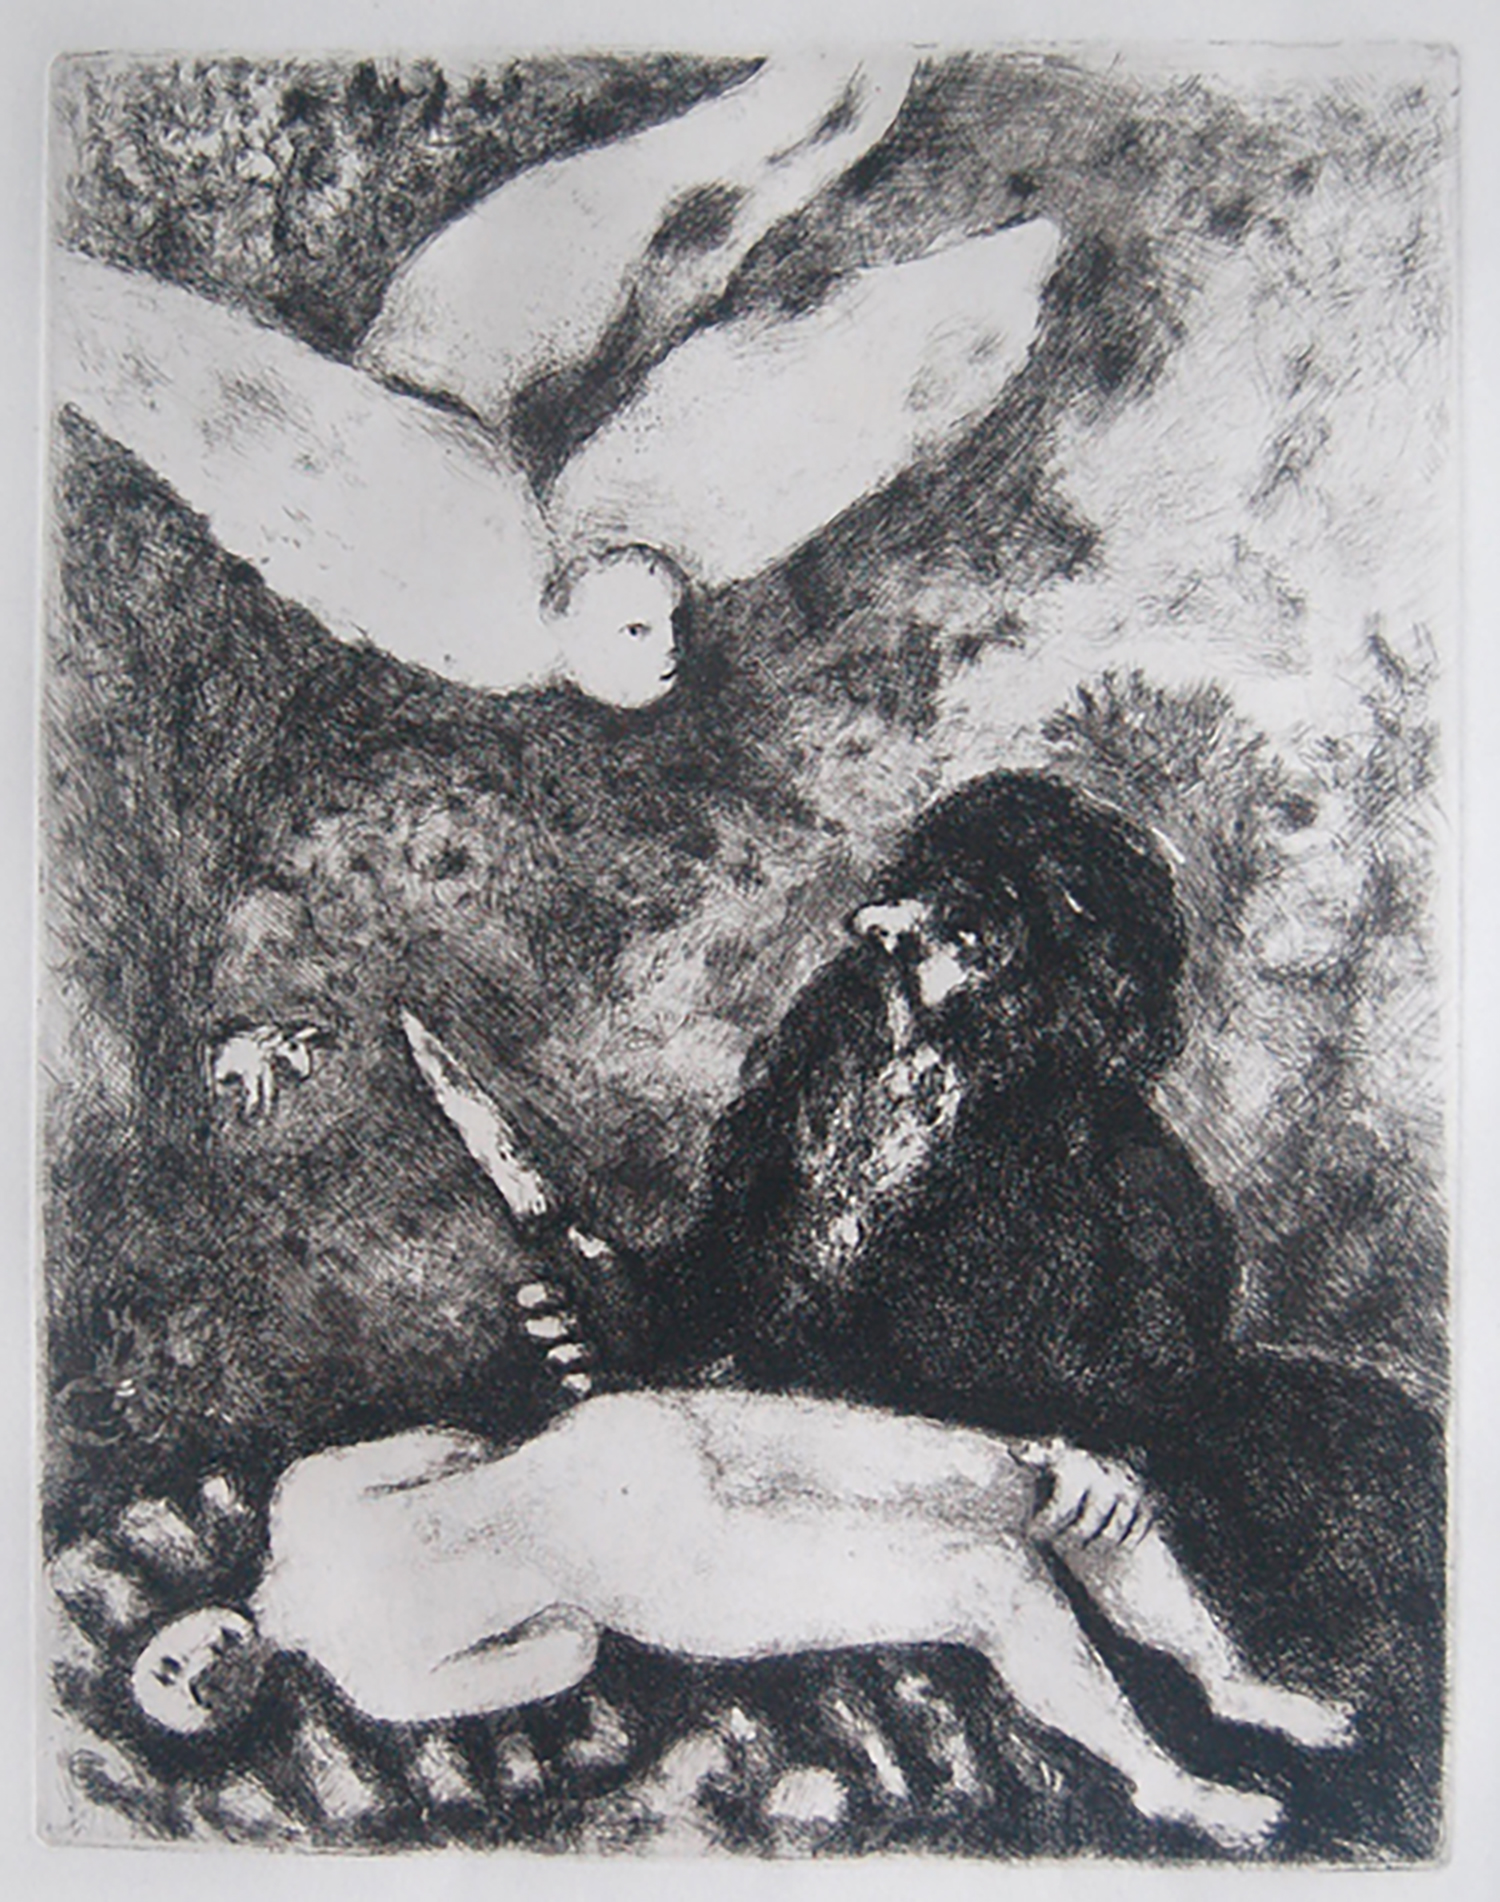 Figure 8:  The Sacrifice of Abraham . Chagall's expression of man's faith in God reaches a climax in this dramatic scene. Abraham gently holds Isaac's leg with one hand and lifts the knife with the other. The sudden descent of the angel arrests his movement and Abraham's submissive eyes are locked onto God's messenger. The small white ram that will replace Isaac as the offering emerges from the dense thicket on the left. In describing his childhood nightmares, Chagall alludes to the frightening imagery of this sacrifice.